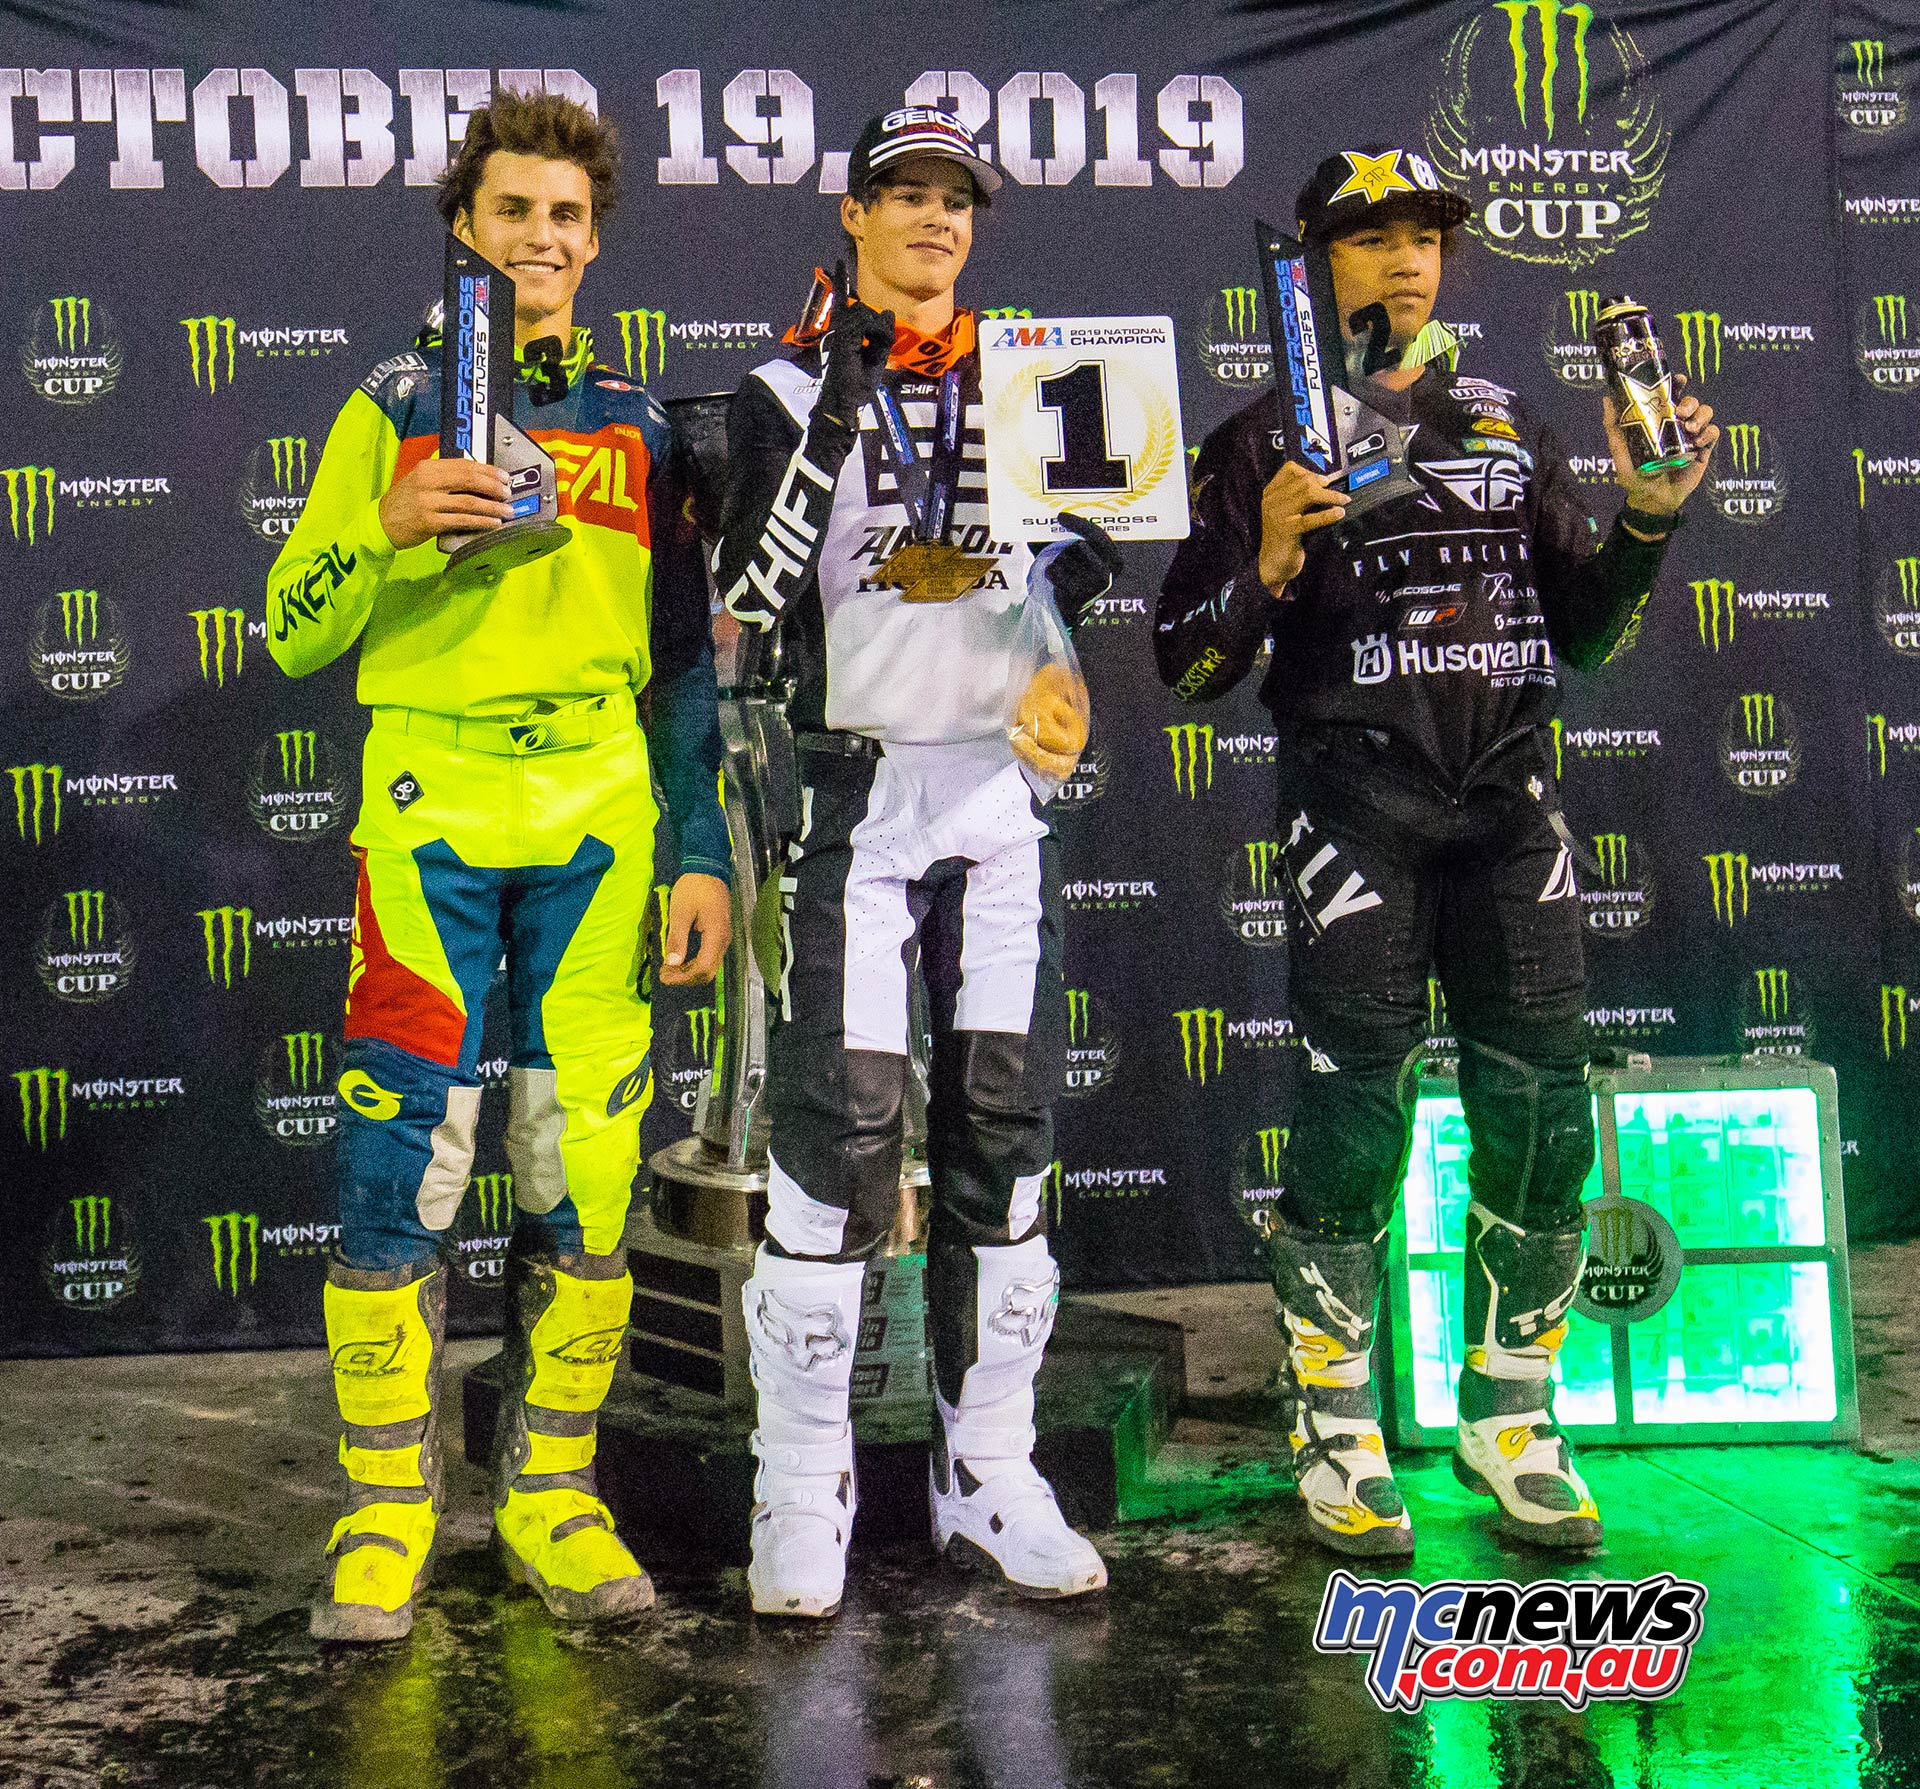 Monster Energy Cup Futures Podium Lawrence Wins JK MEC